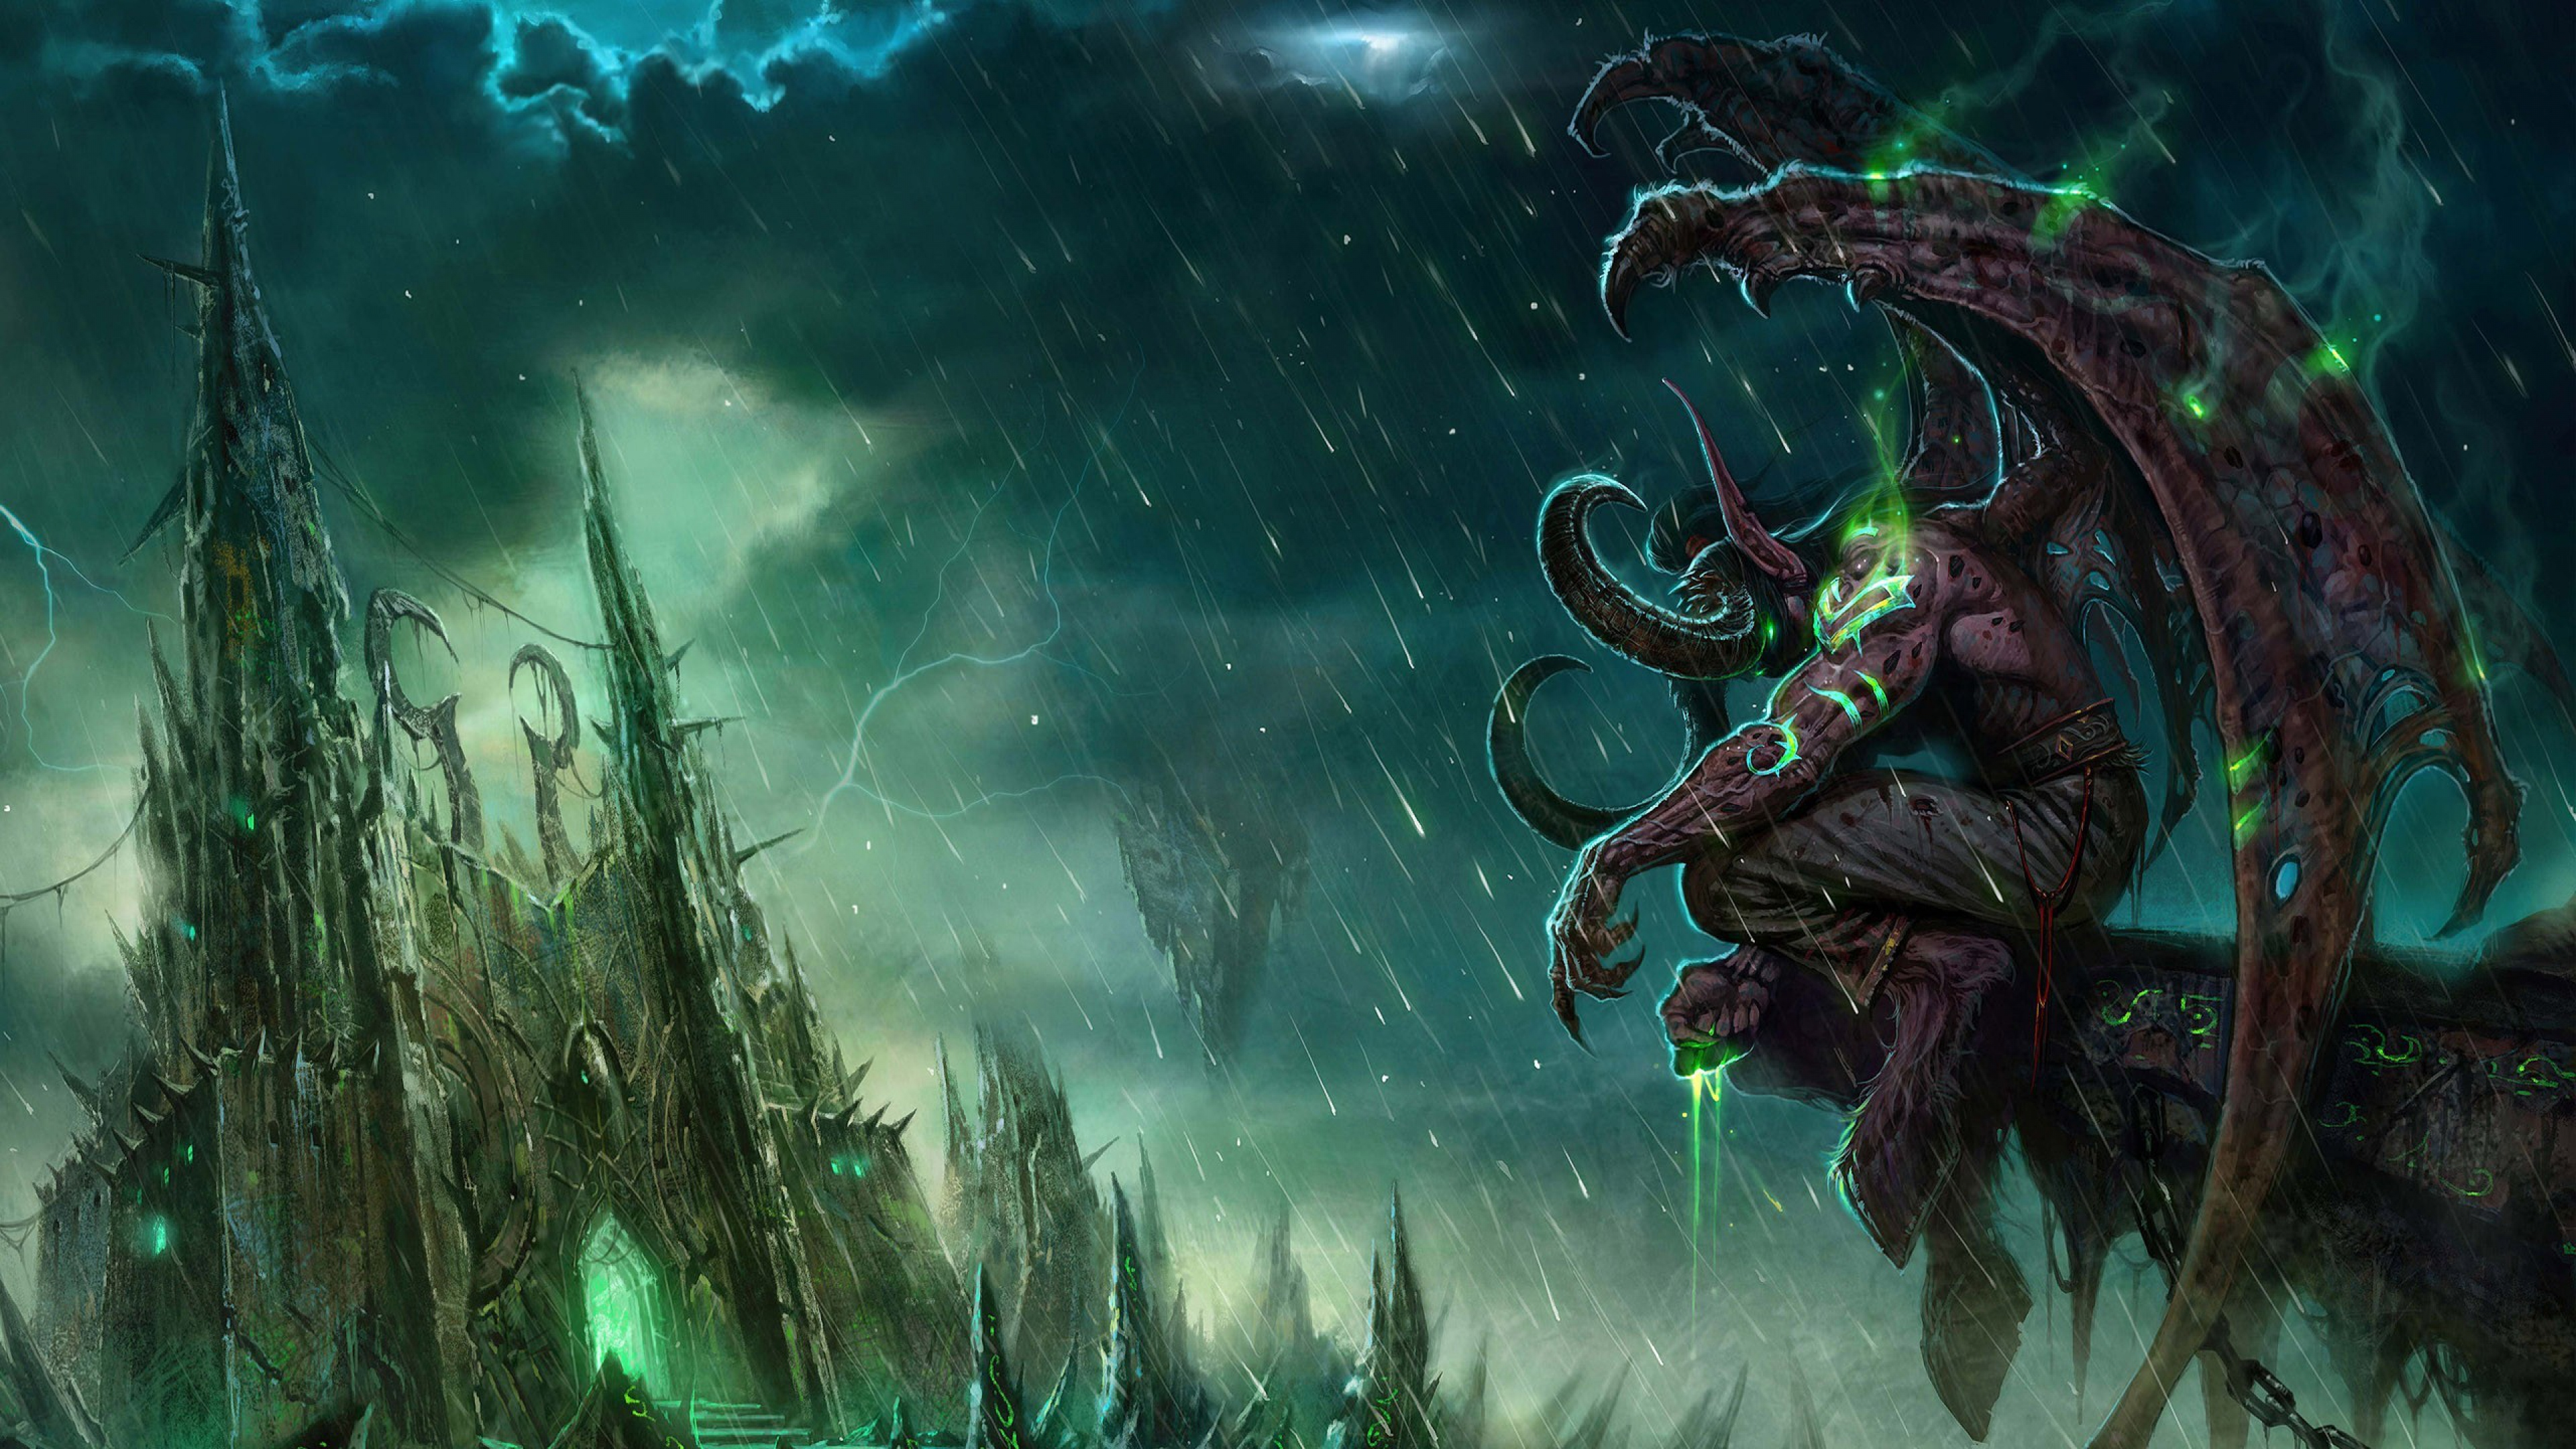 World of warcraft Castle Monster Bad weather Wallpaper Background 3840x2160